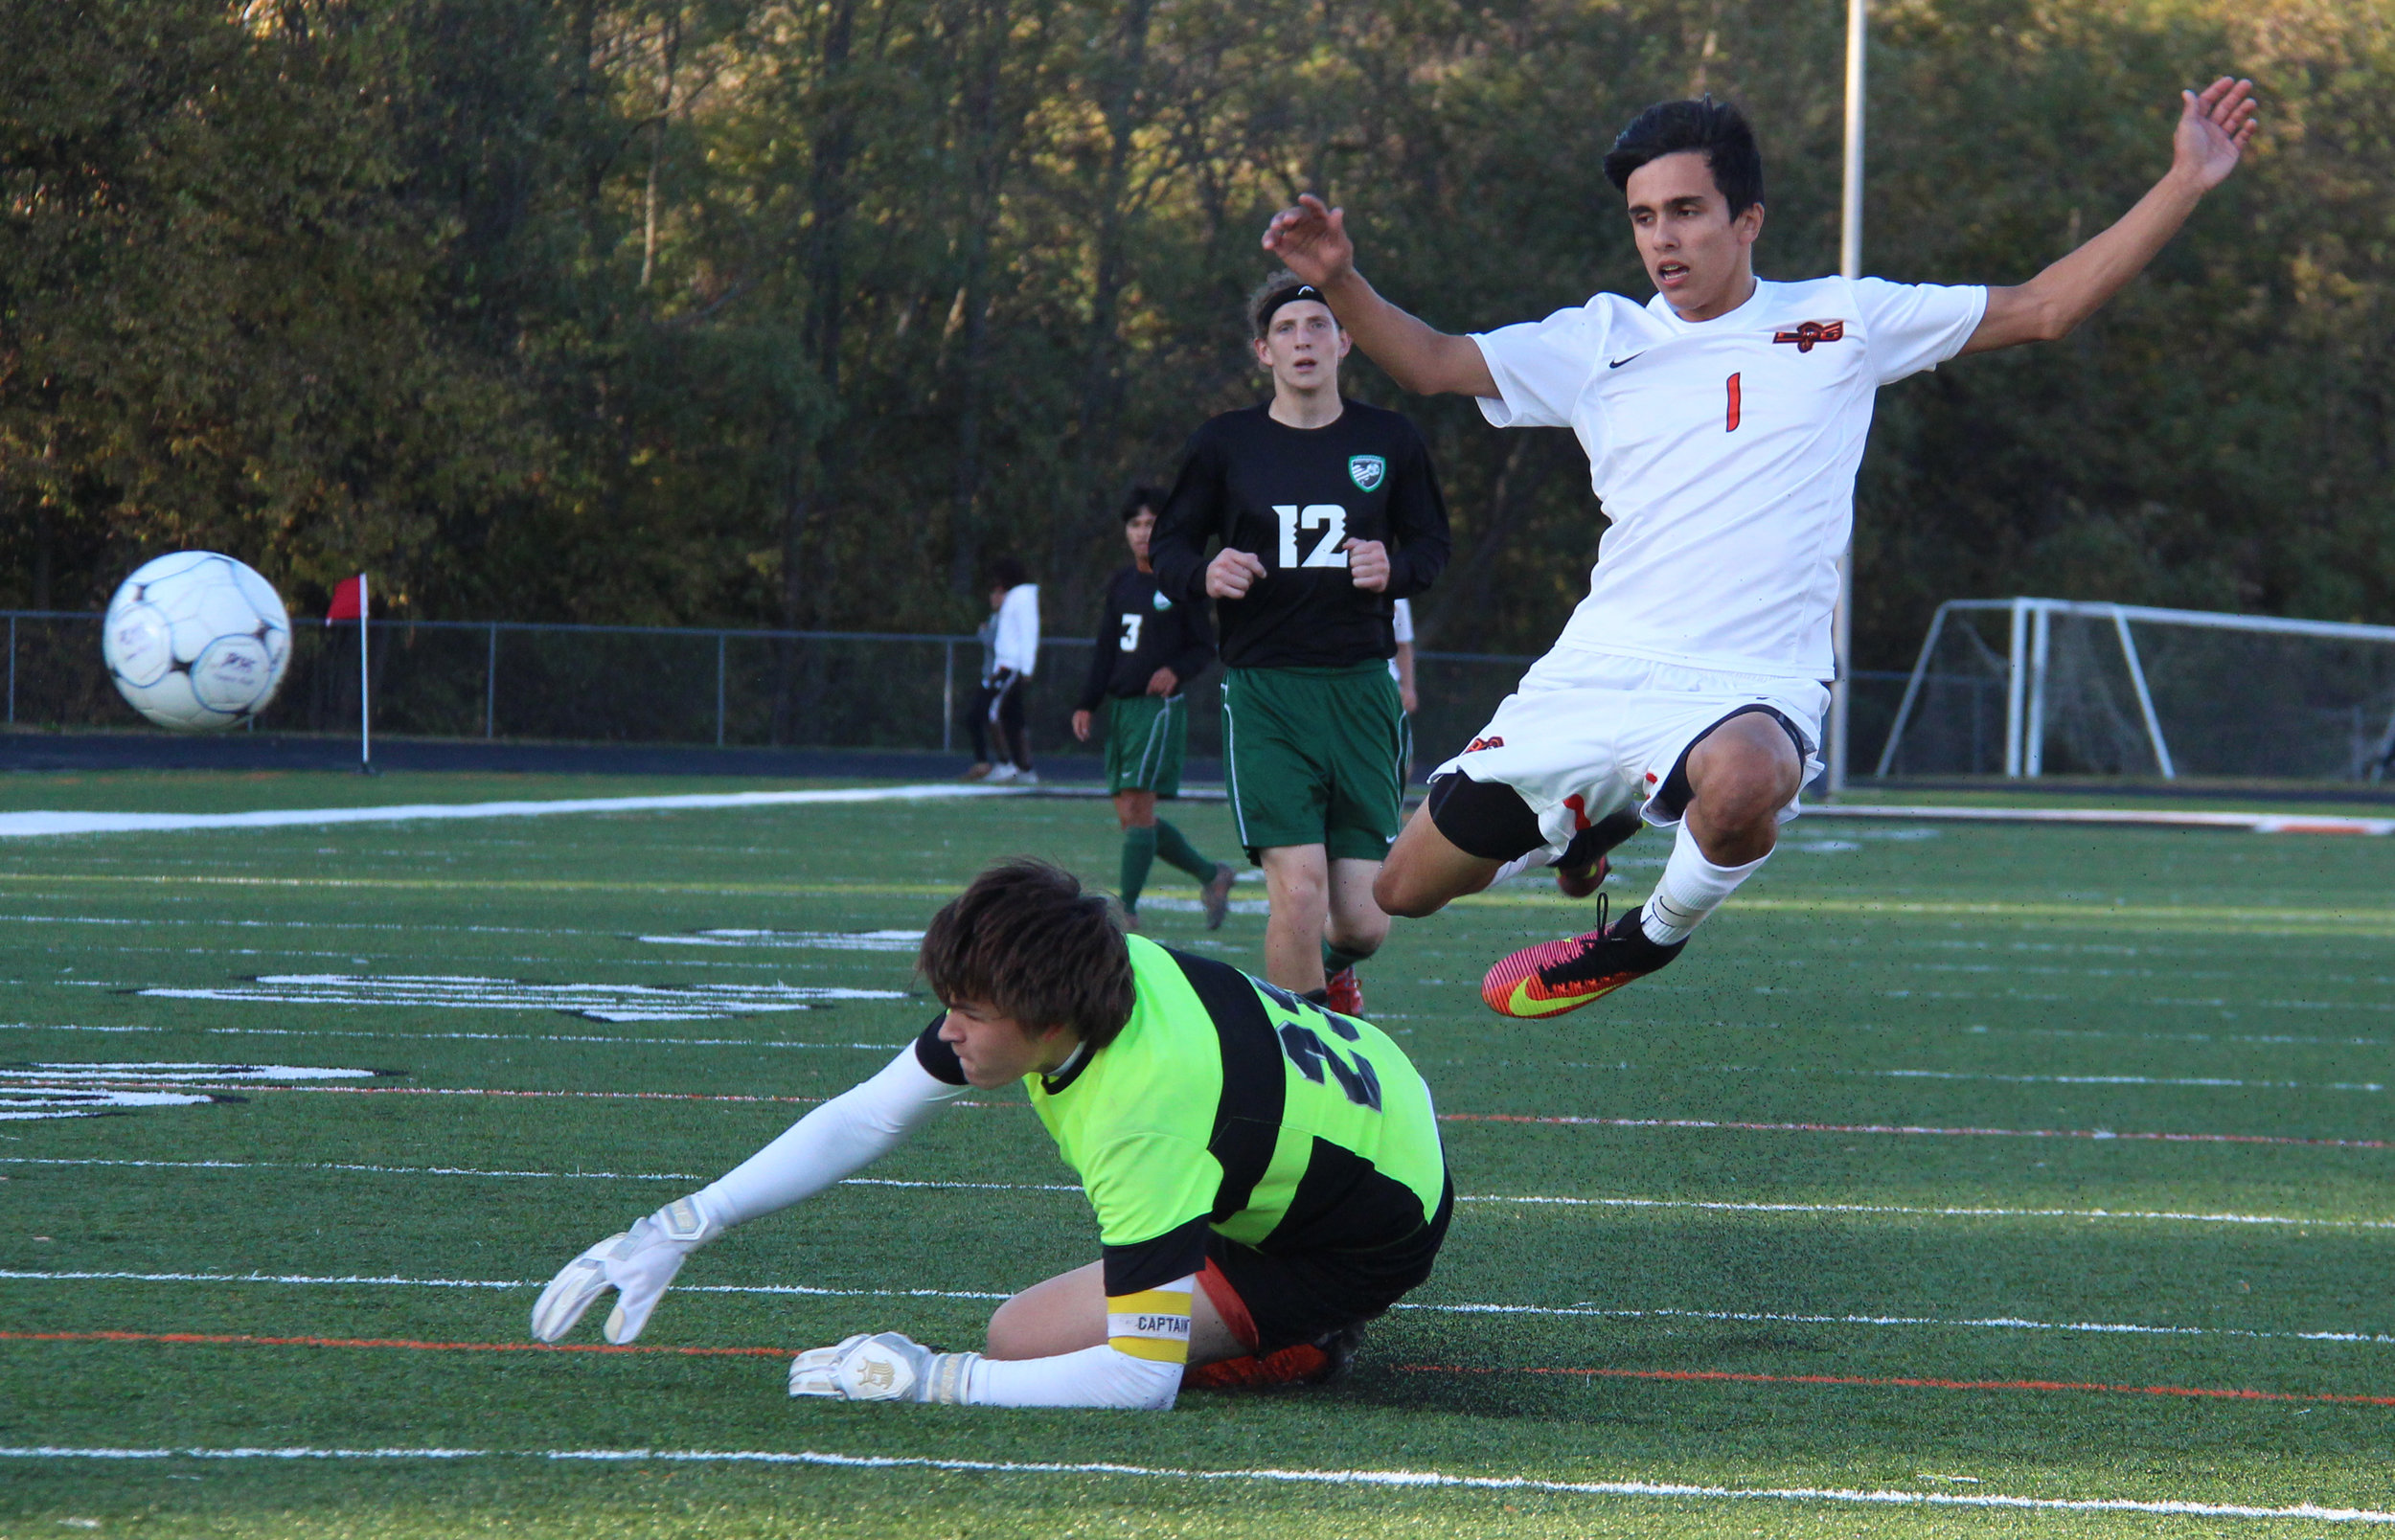 ROSS MARTIN/Citizen photo Platte County junior forward Chandler Peterson (1) jumps to avoid colliding with St. Joseph Lafayette's goalkeeper during a Class 3 District 16 matchup Monday, Oct. 24 at Pirate Stadium.